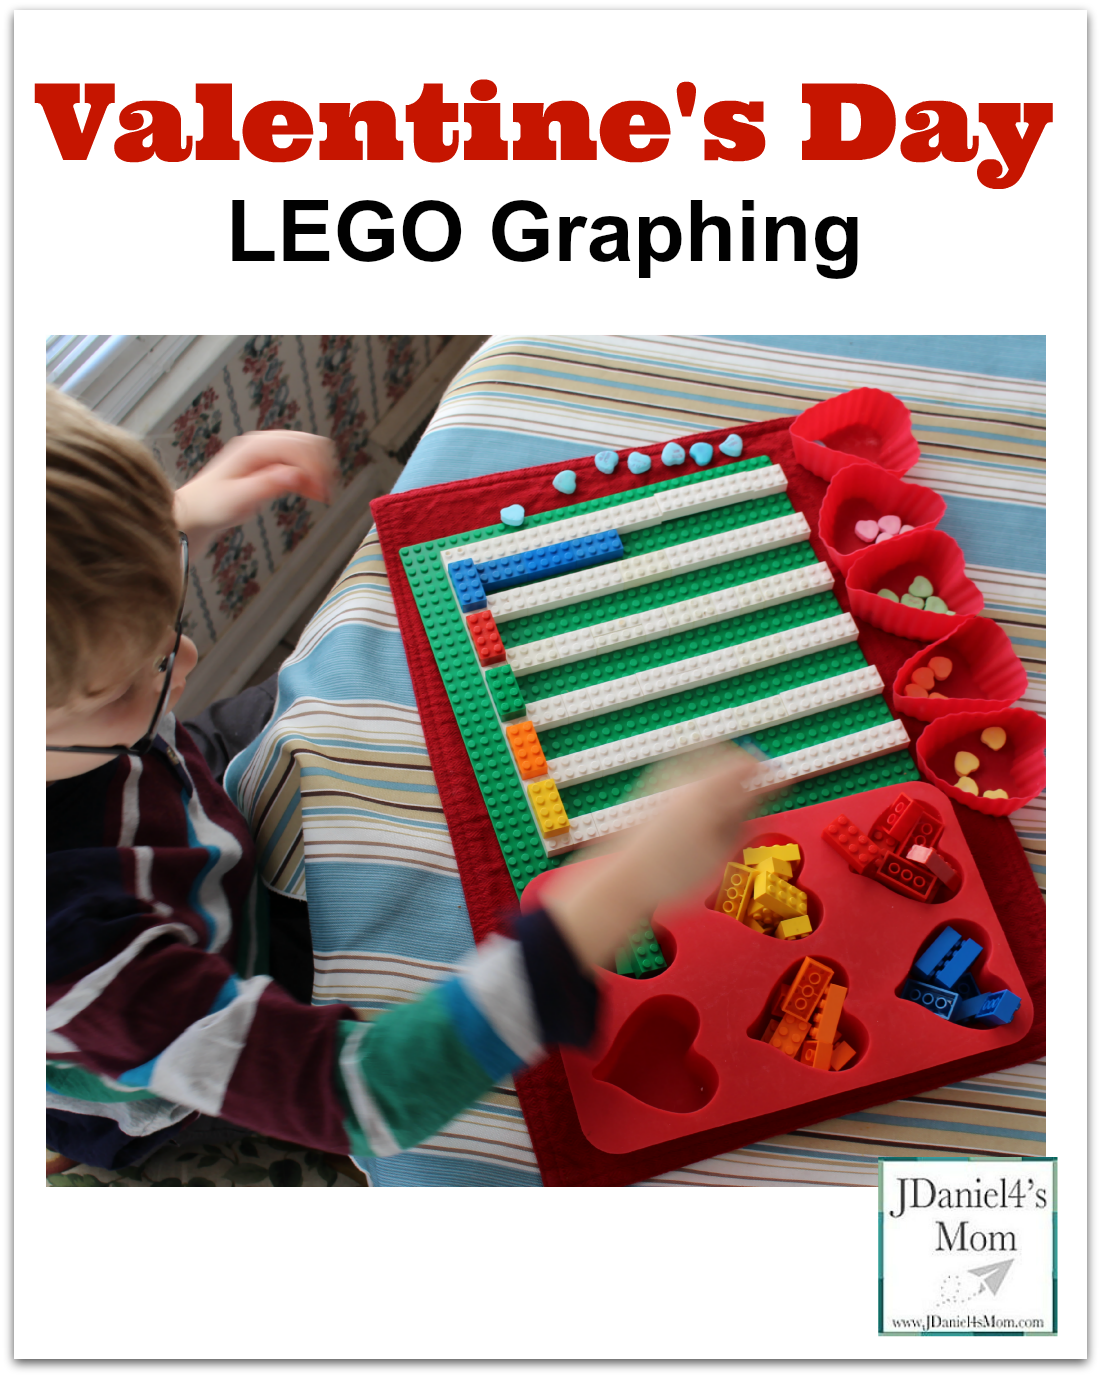 Math is Fun-Valentine's Day LEGO Graphing -Adding red bars